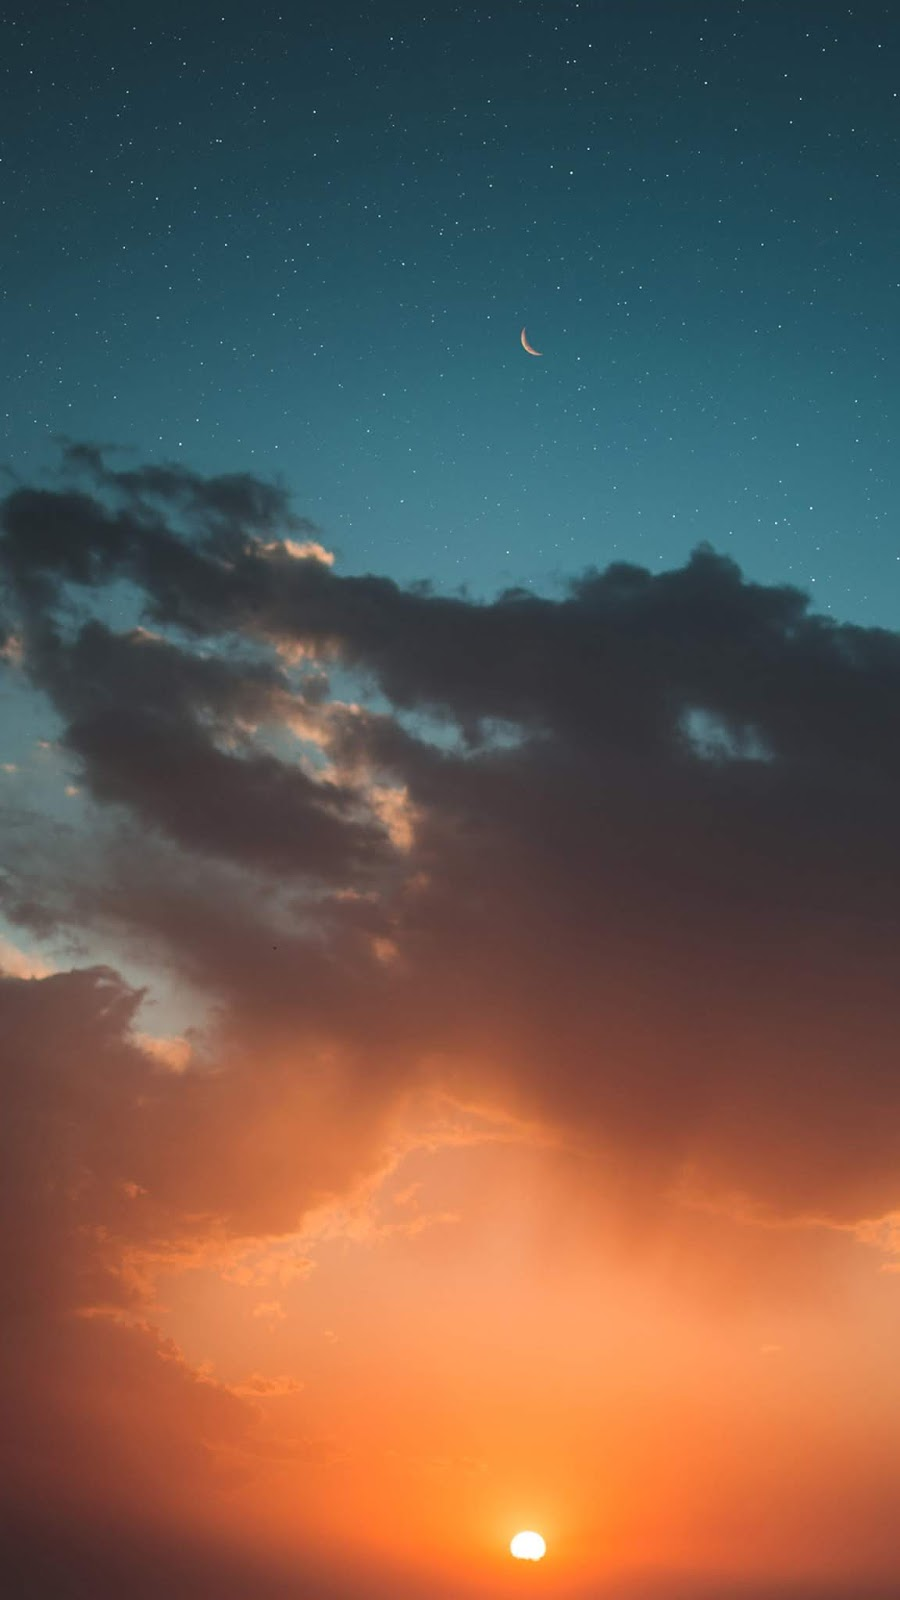 Sunset night sky